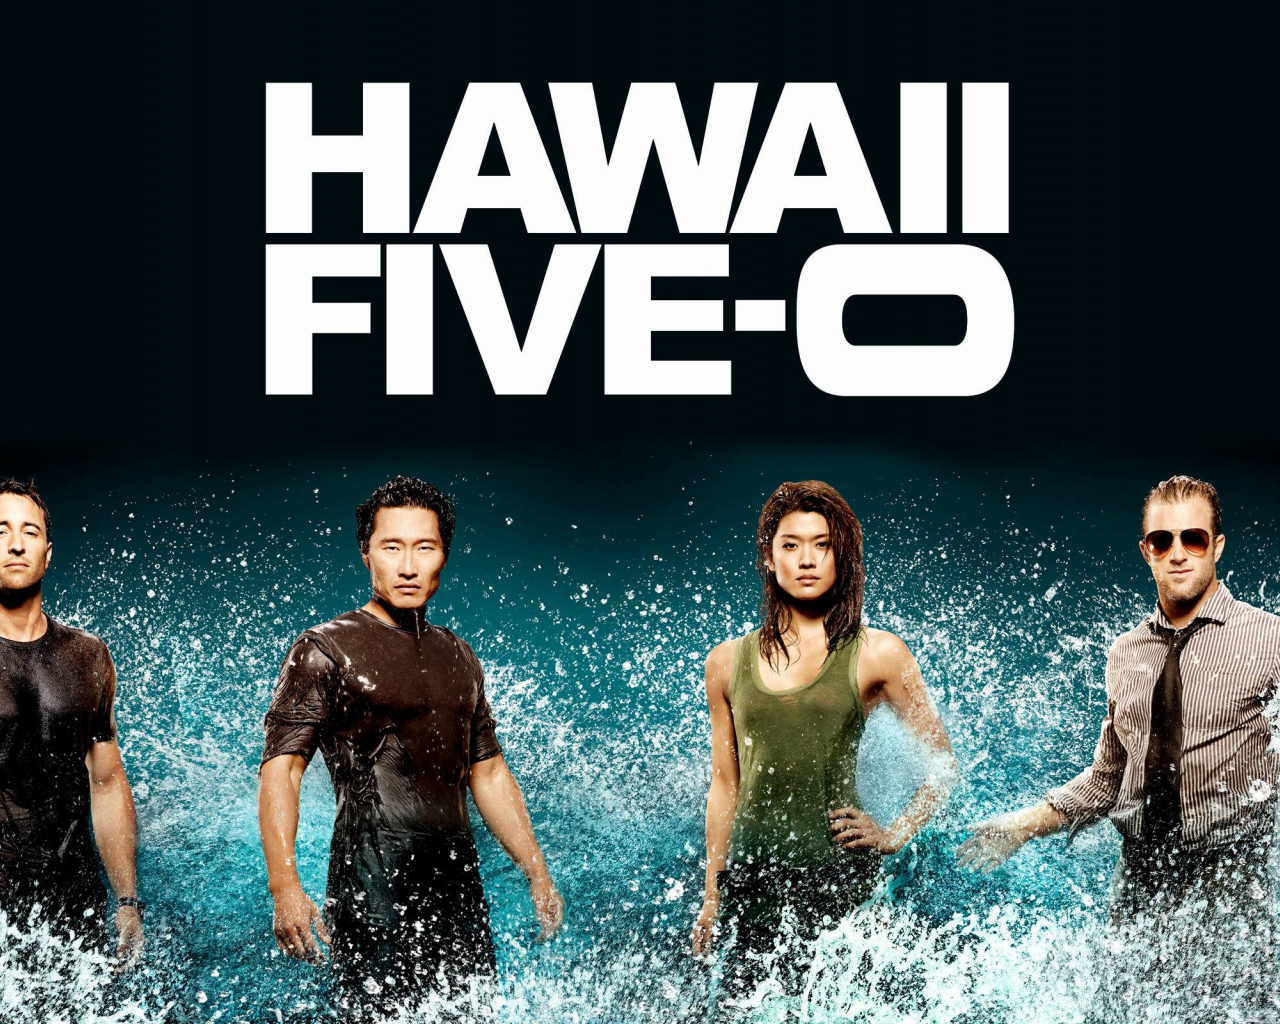 Free Download Hawaii Five 0 Wallpapers 2560x1600 For Your